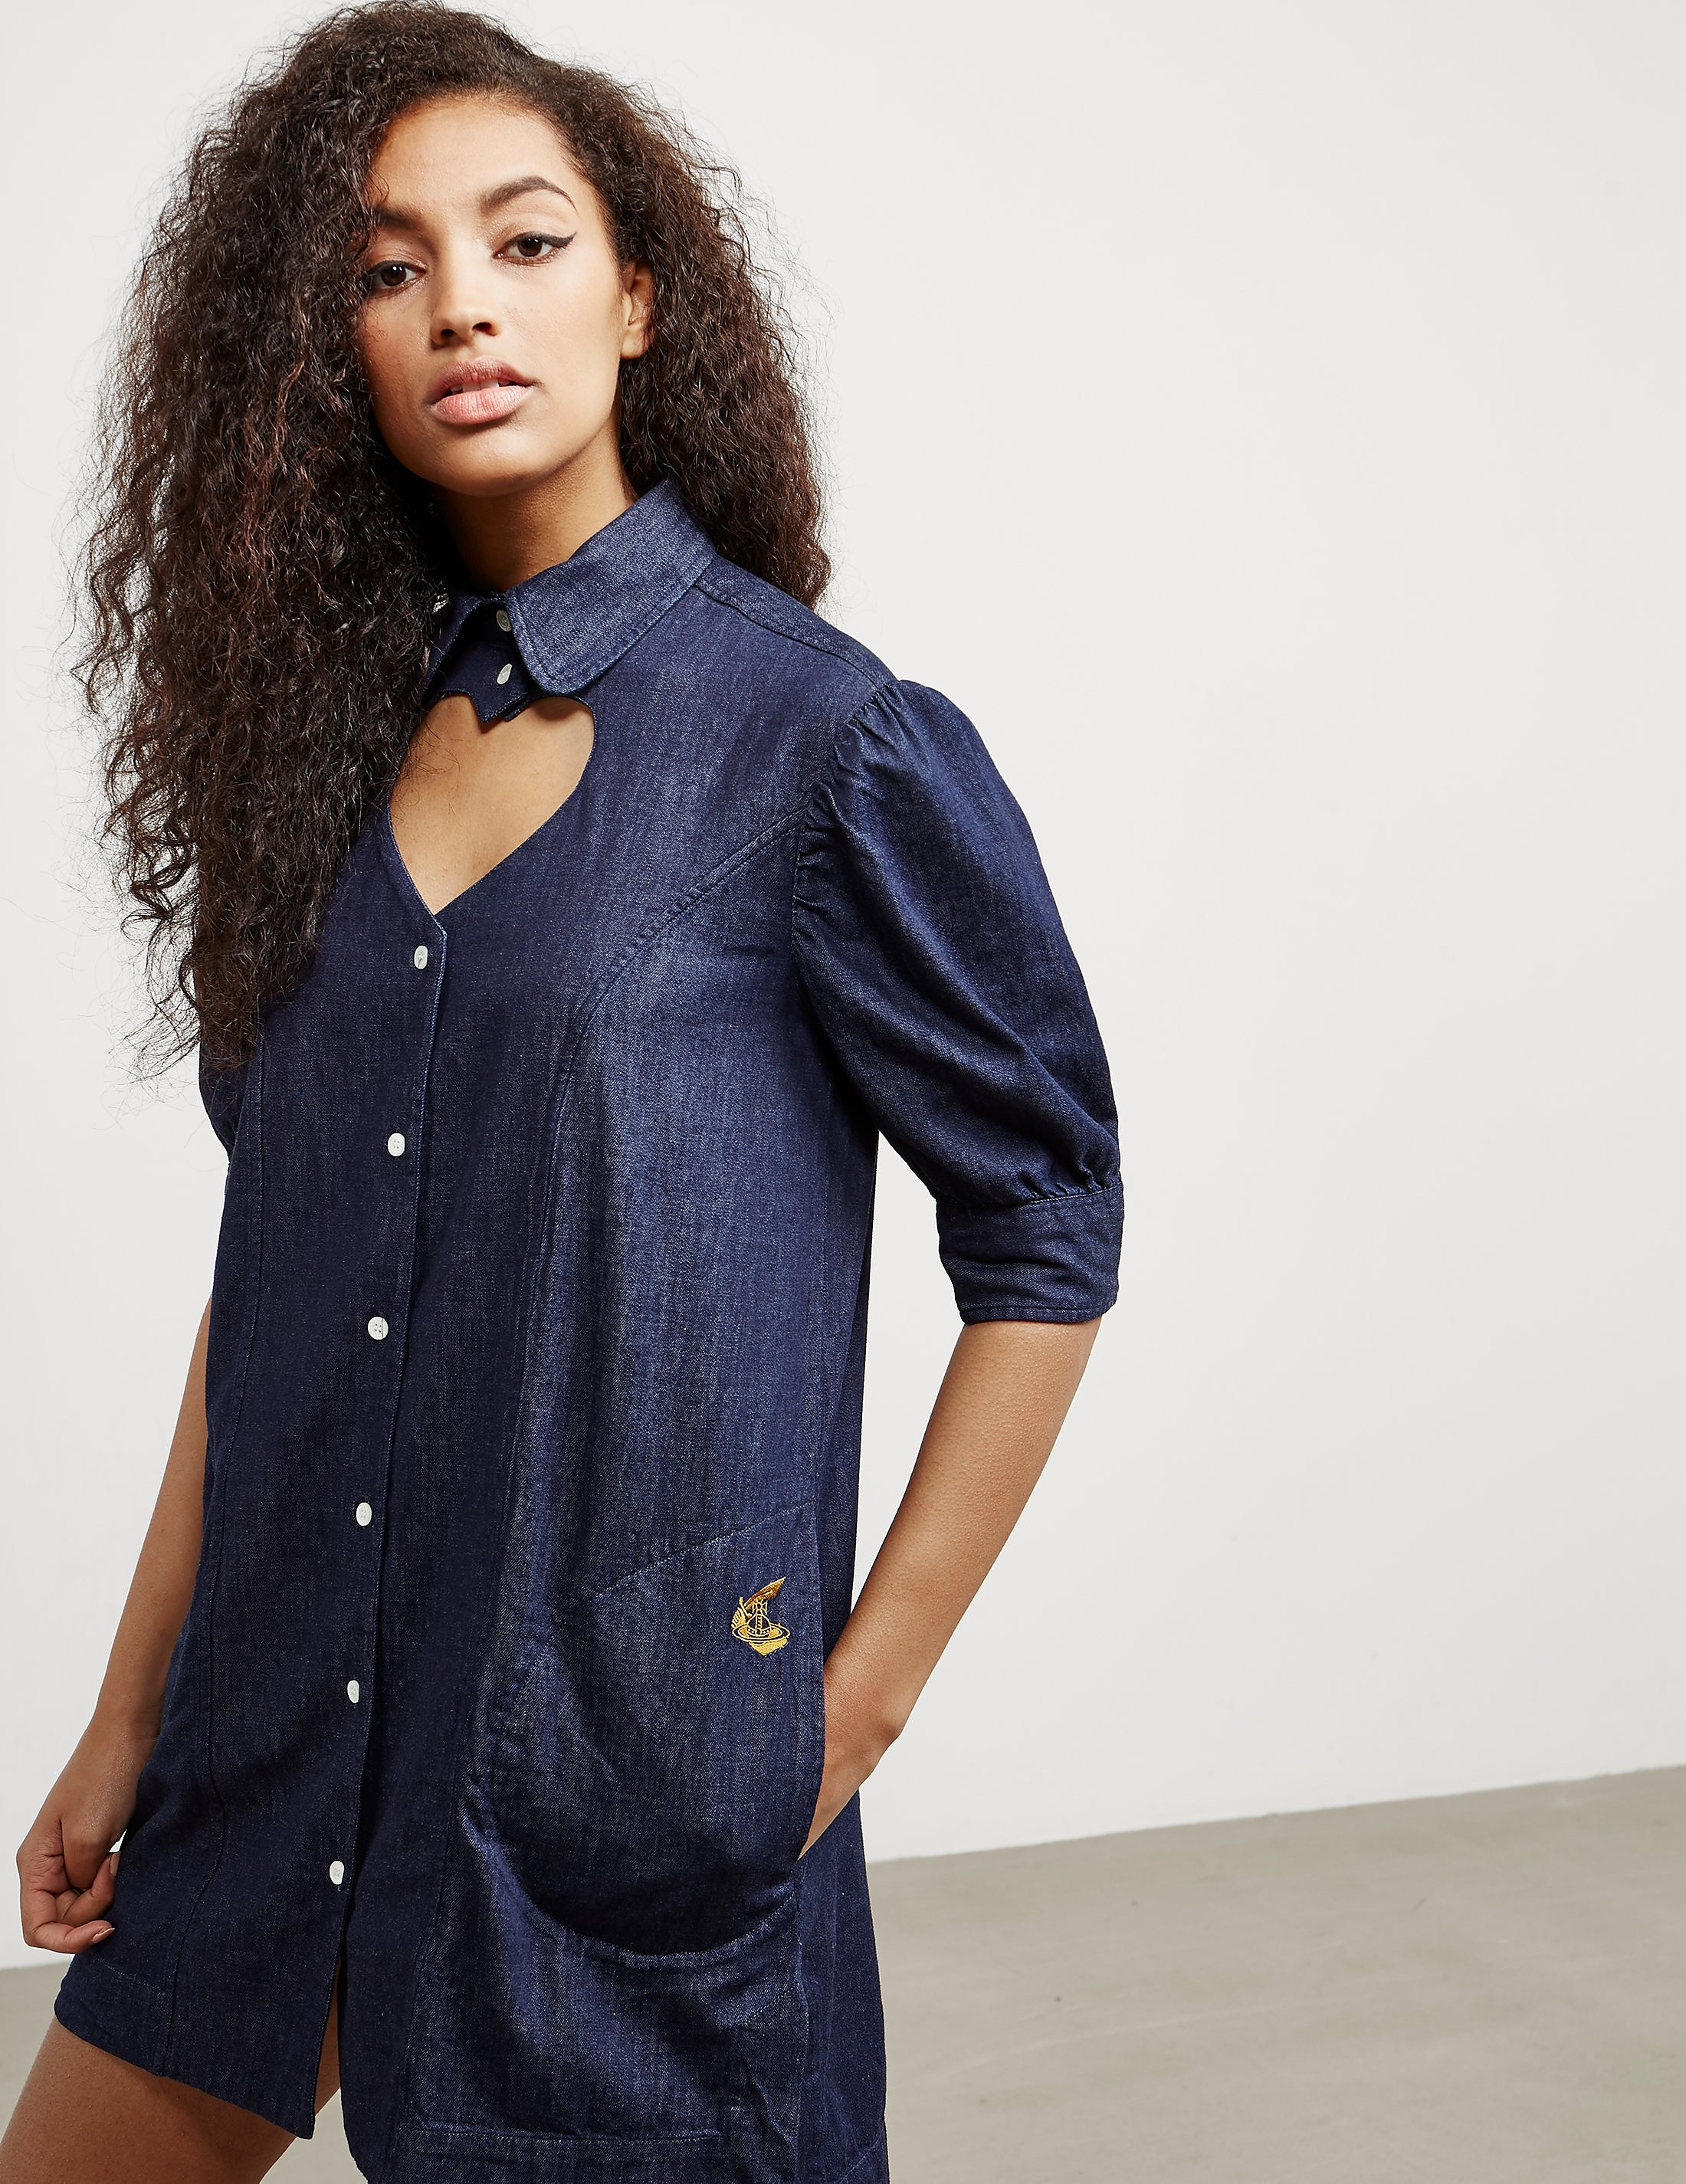 Vivienne Westwood Anglomania Denim Heart Dress